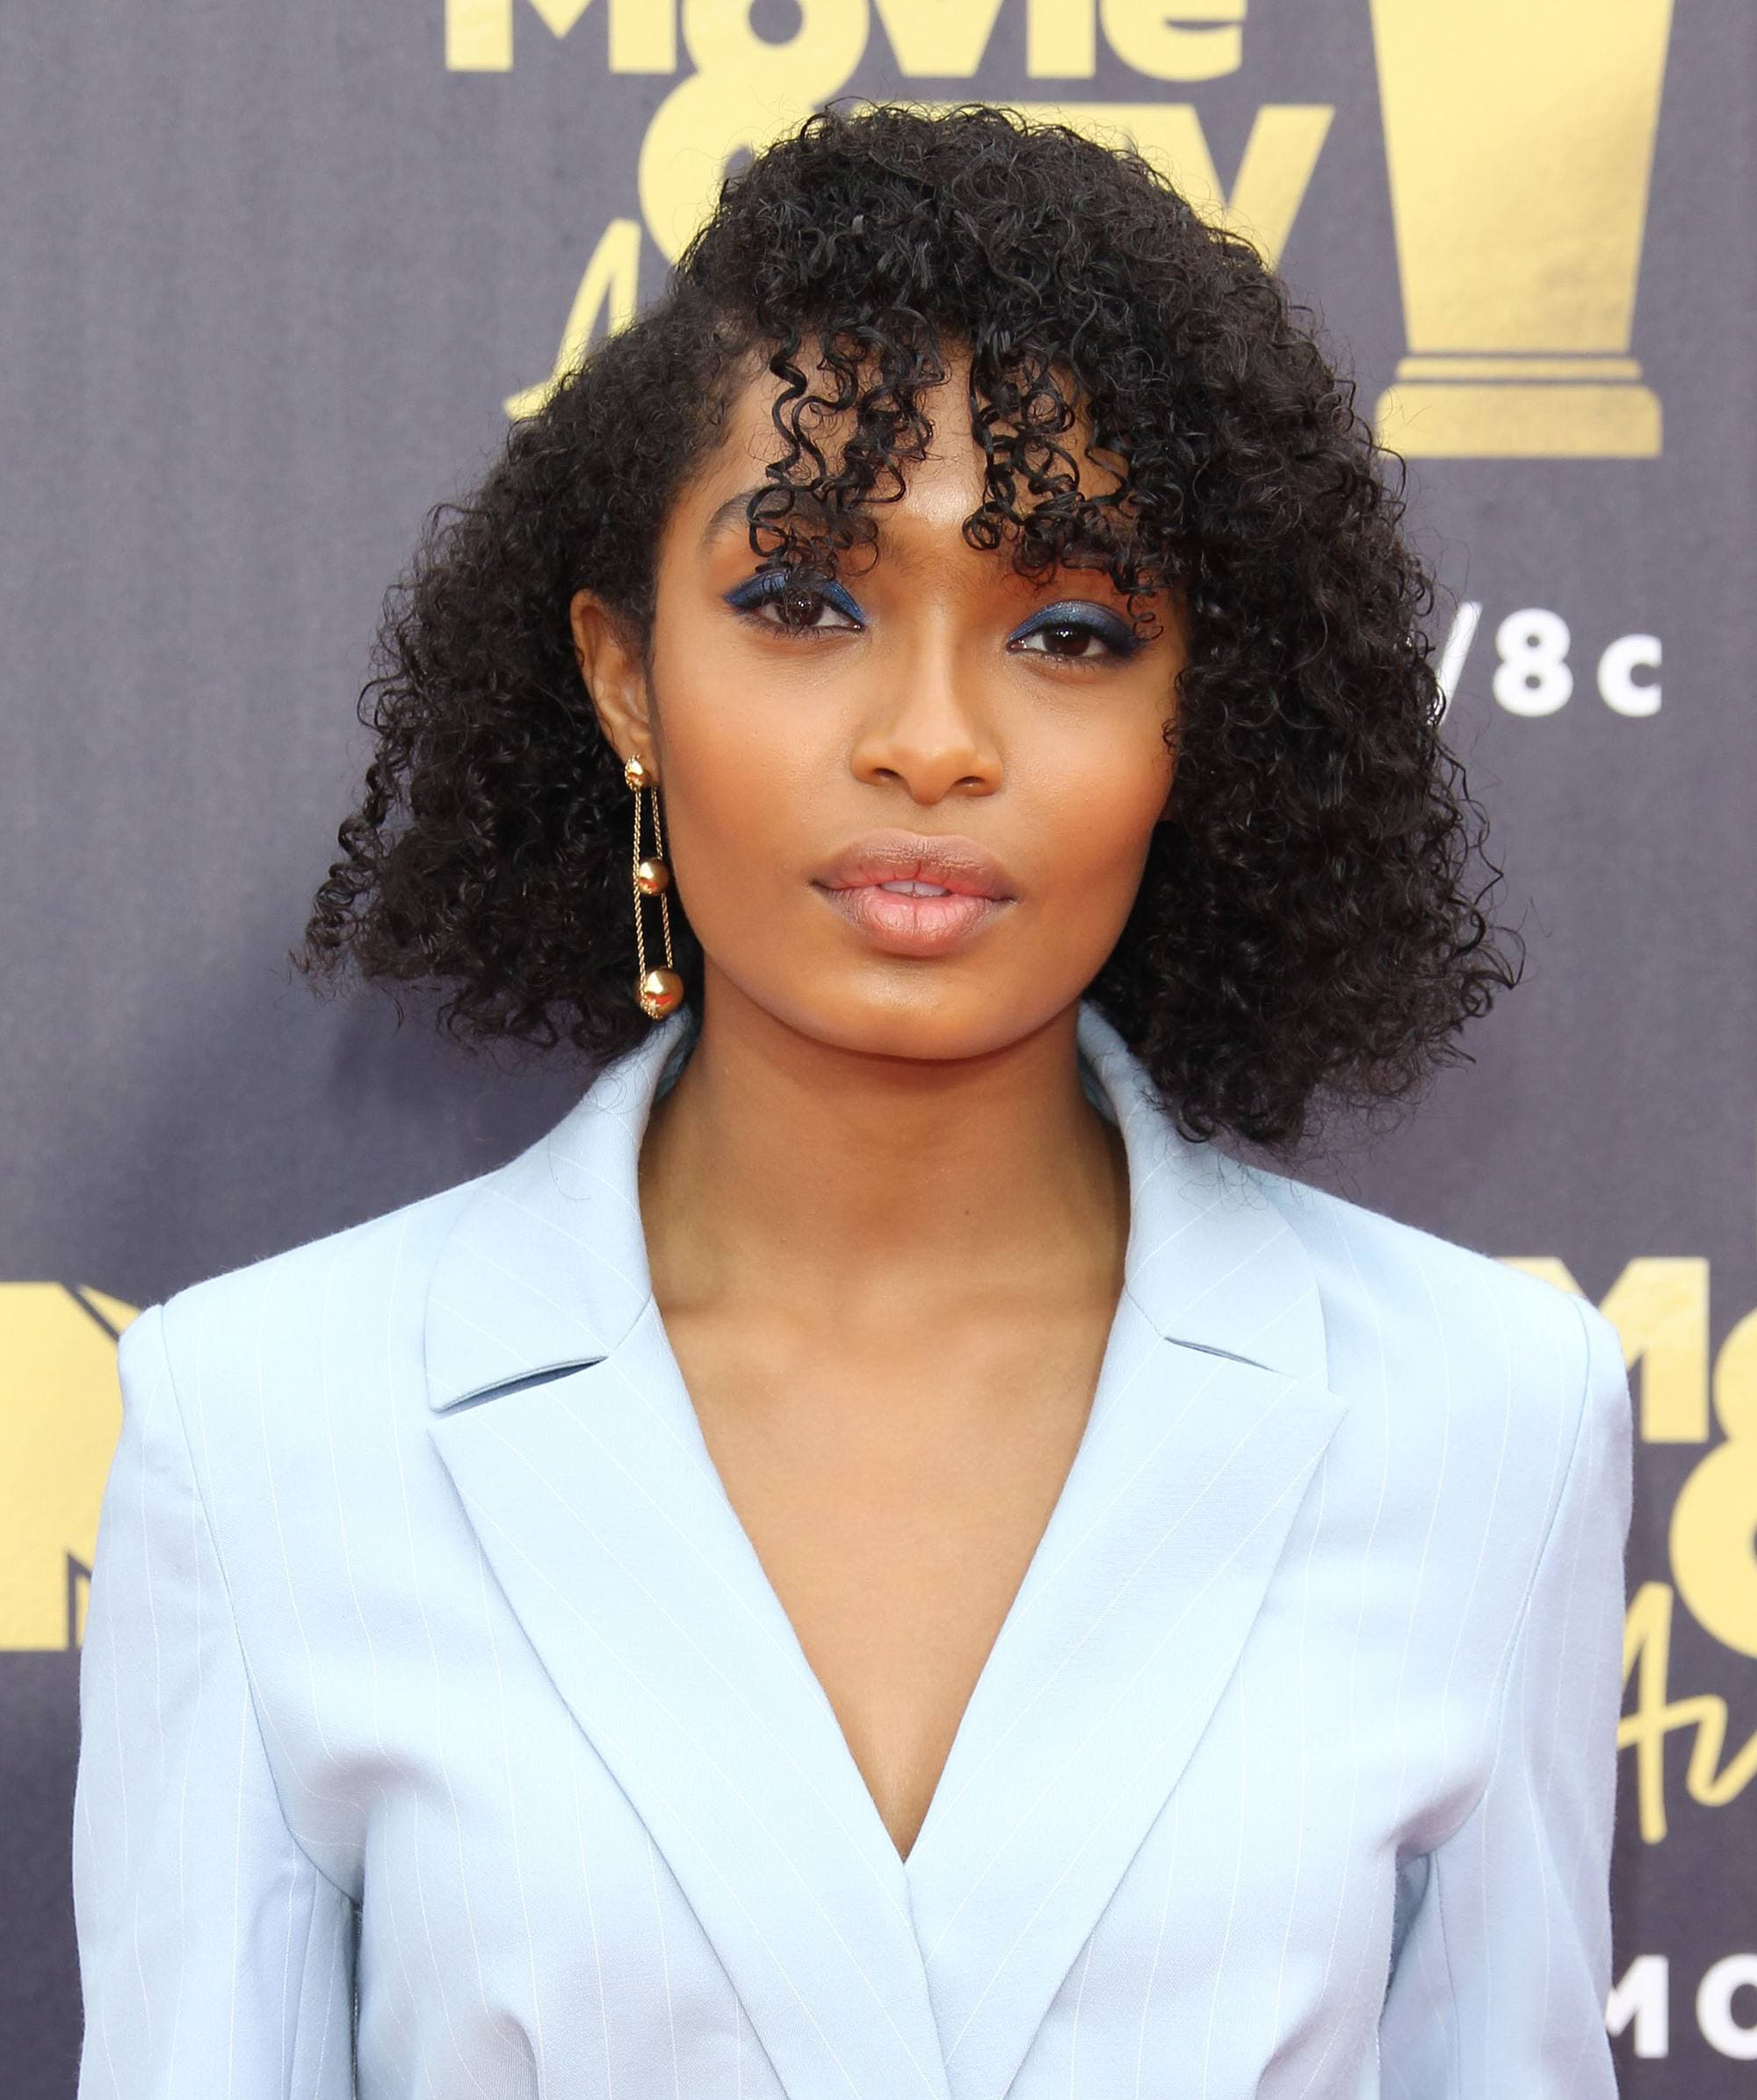 Curly hair hairstyles: Yara Shahidi with naturally curly bob length hair with curly side fringe wearing light blue suit on MTV red carpet